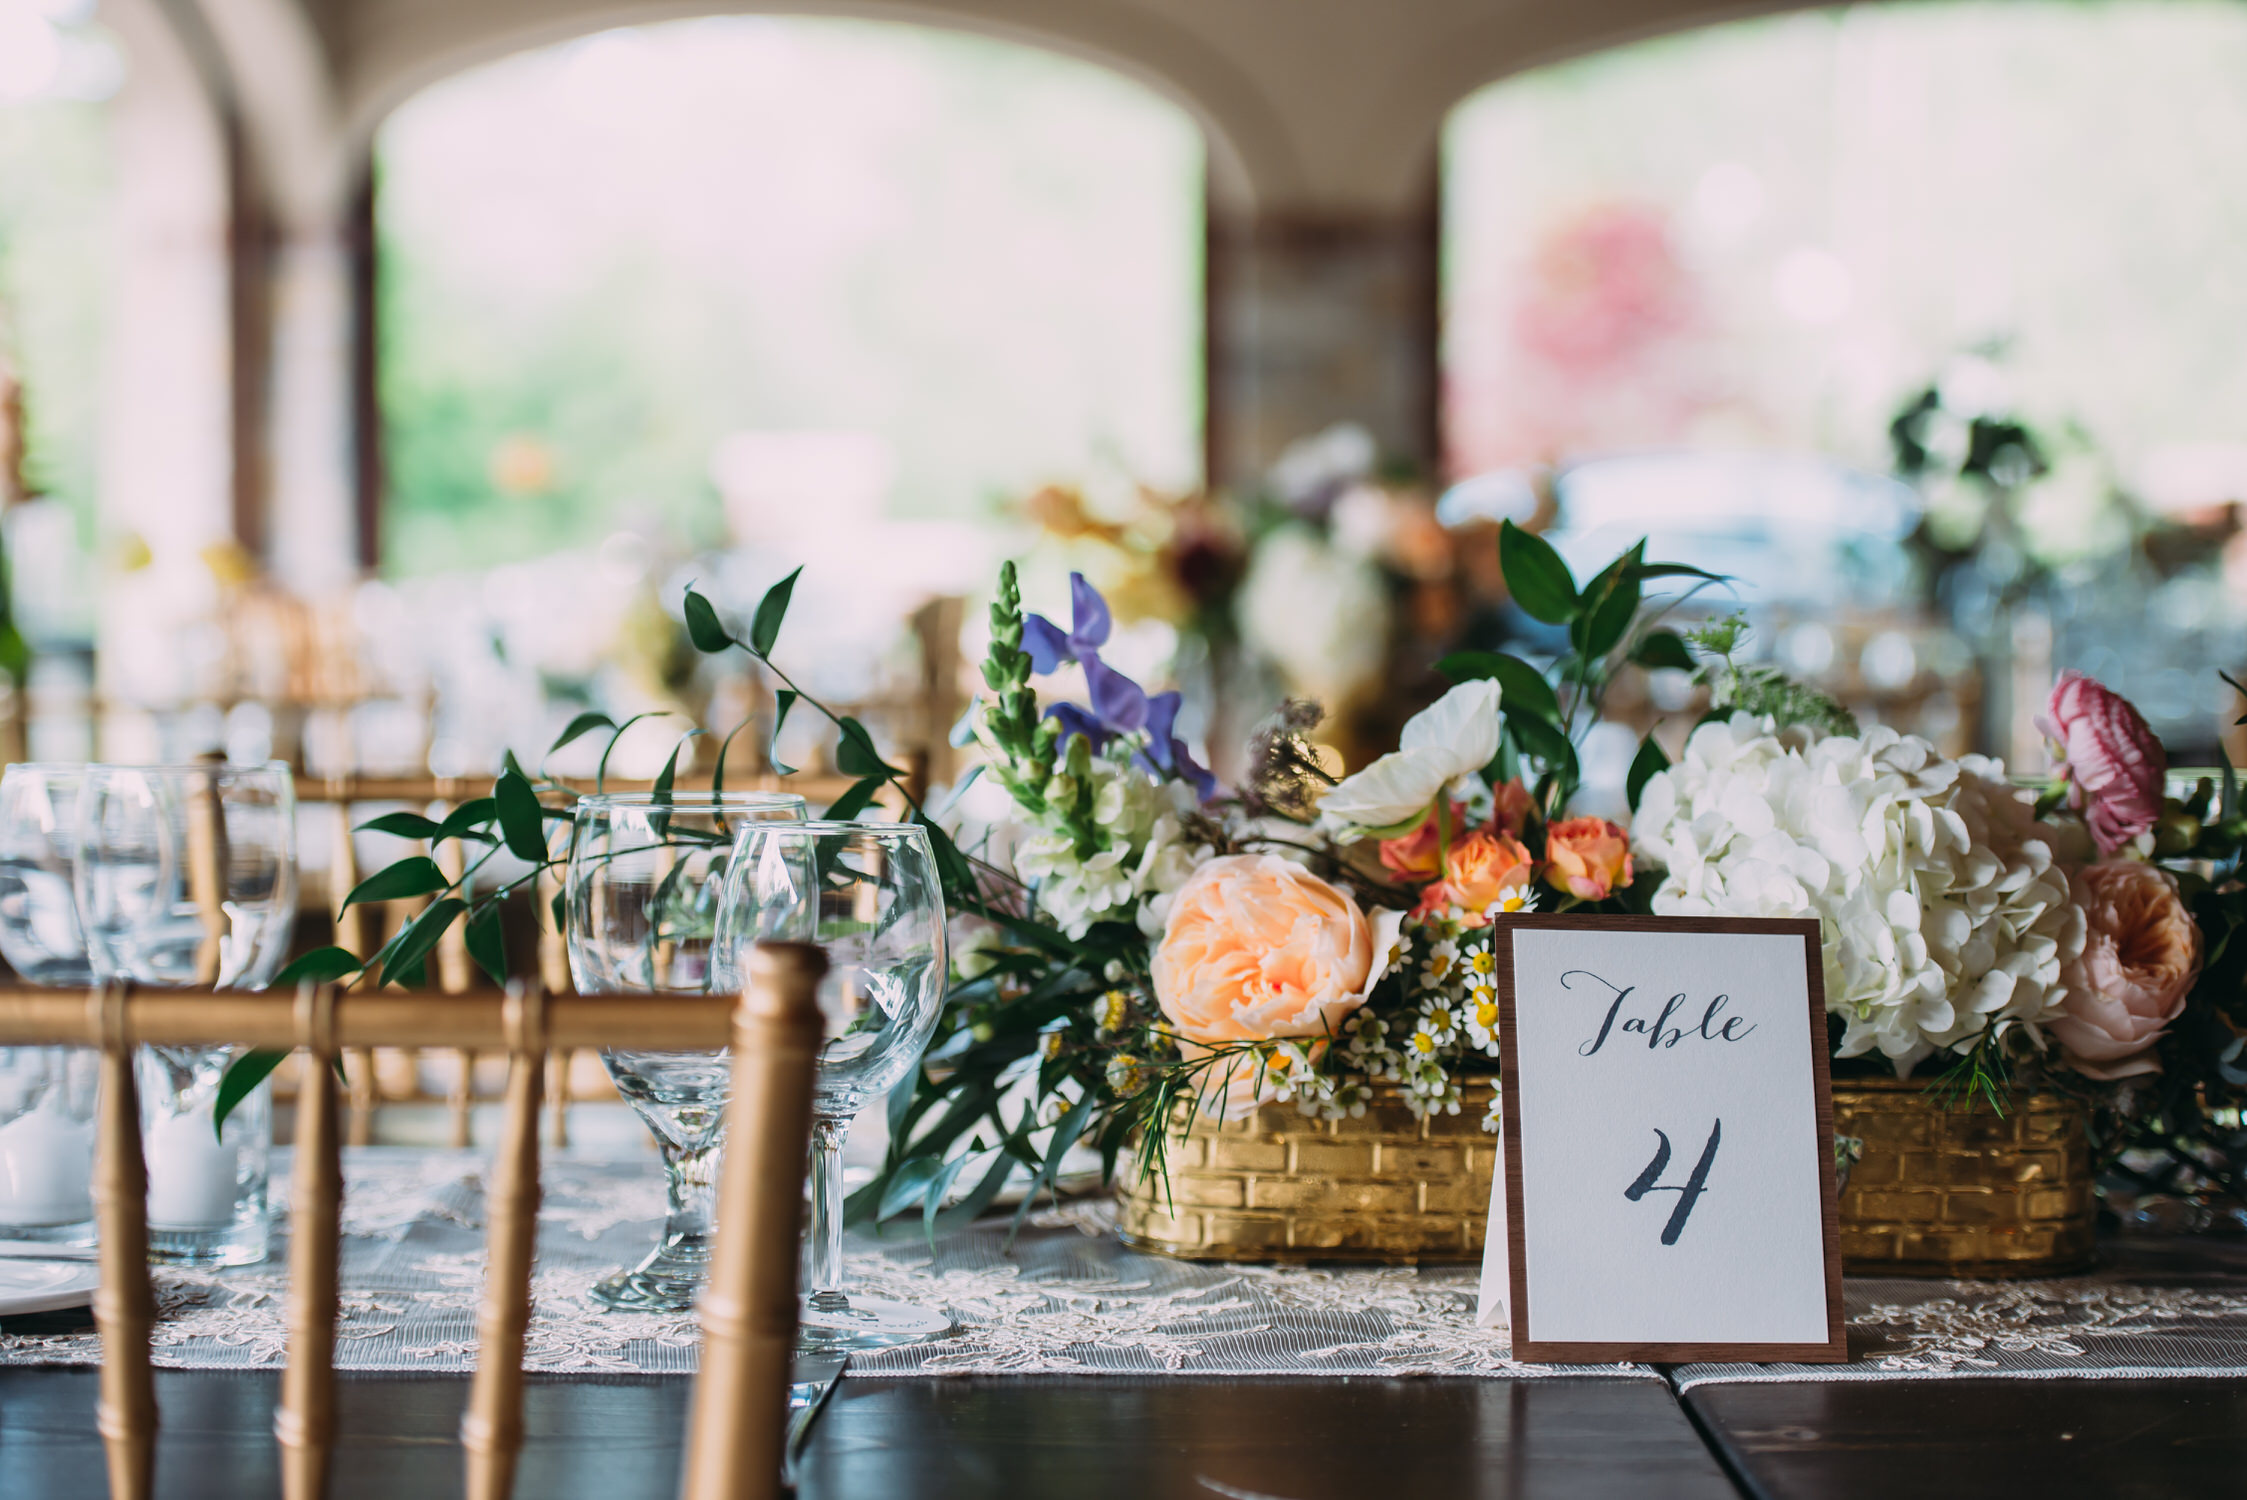 Wedding day details, Style ALtrd